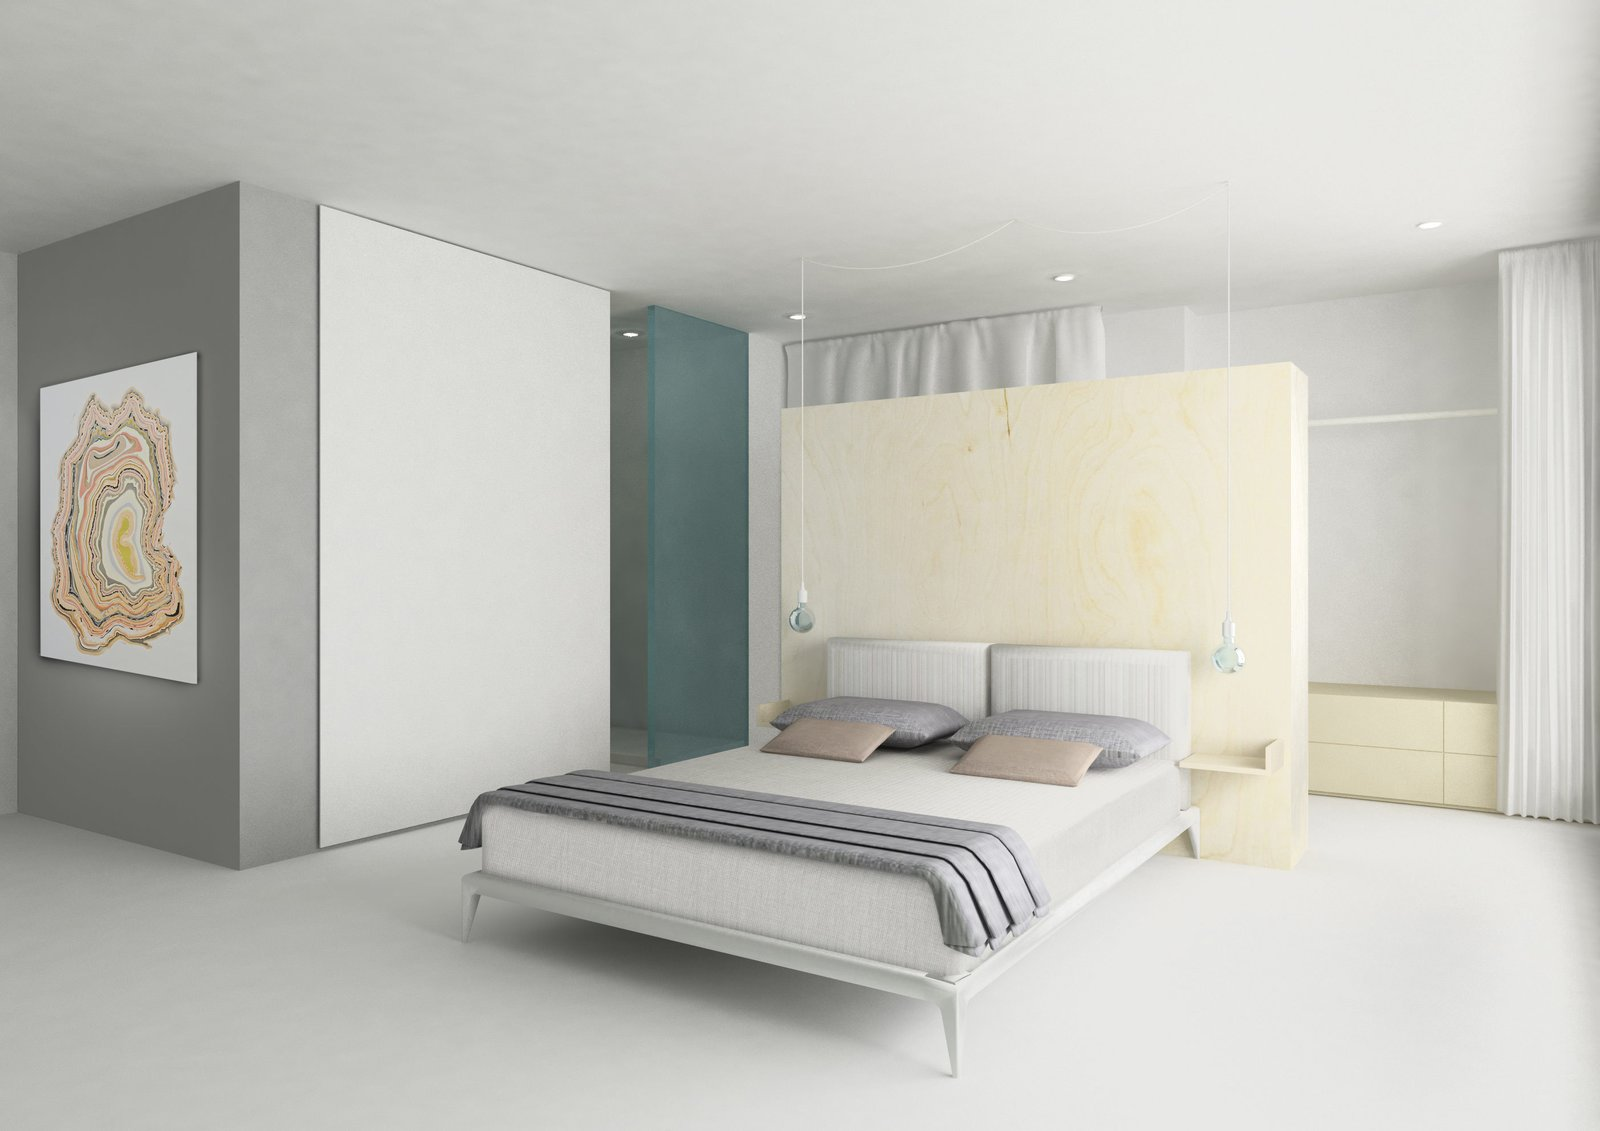 The bedroom of a private residence by Herrenknecht in Zurich.  Photo 5 of 6 in The Globetrotting Designer That Takes on Challenges of All Scales